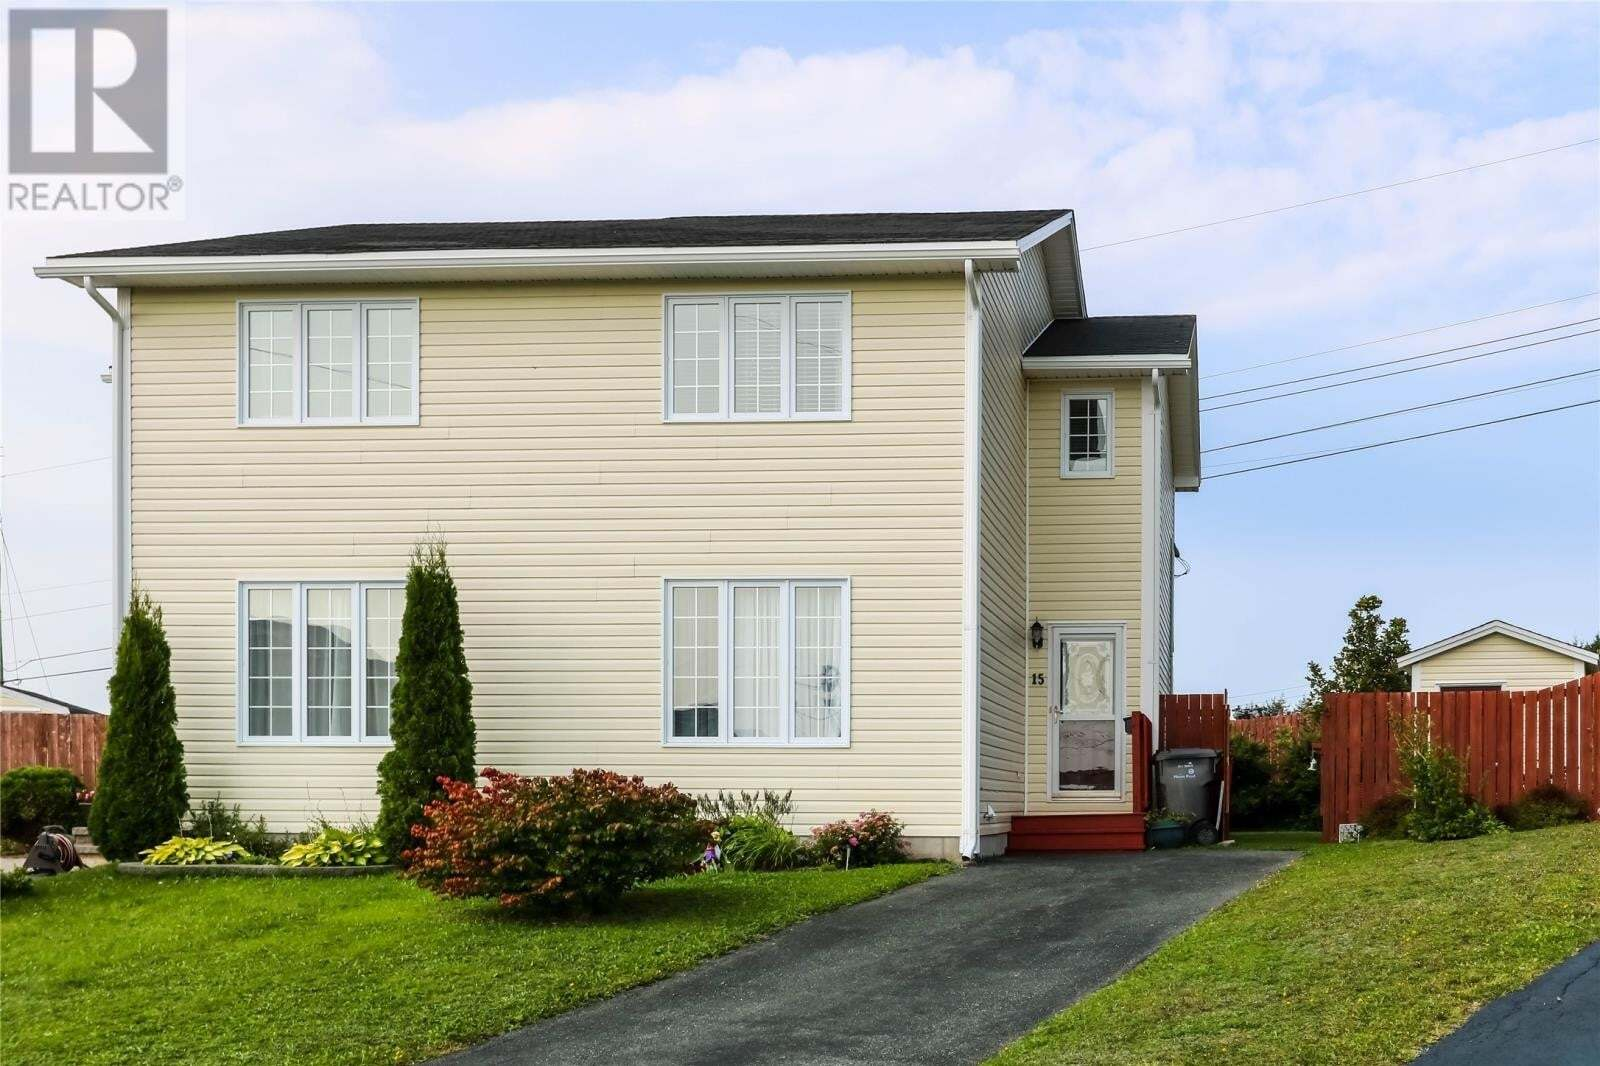 House for sale at 15 Seabright Pl Mount Pearl Newfoundland - MLS: 1221439